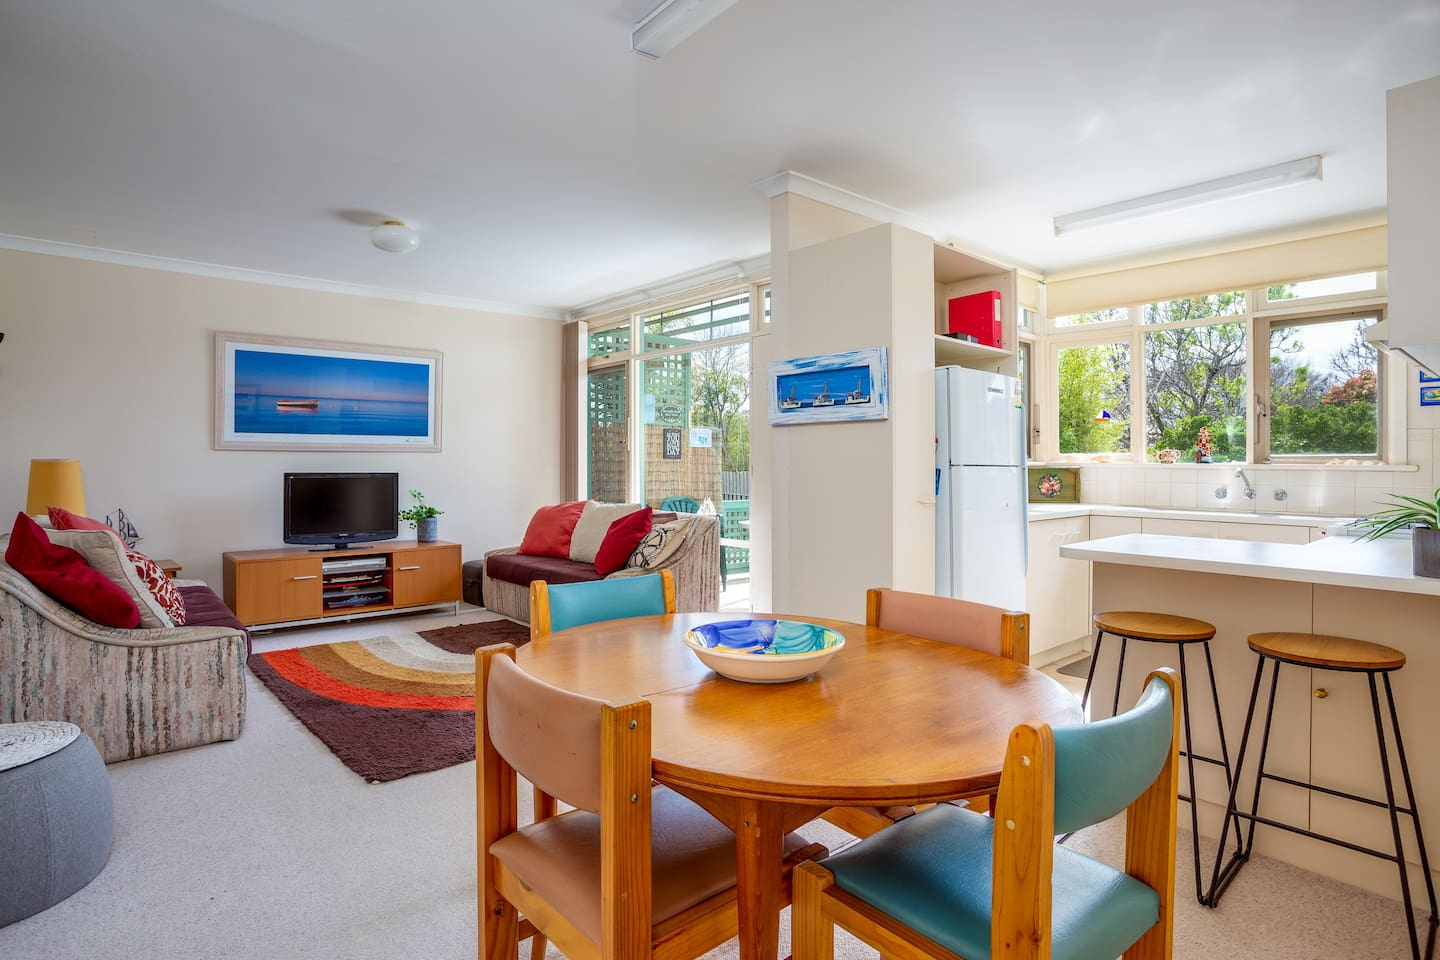 Open plan living area with plenty of natural light facing north overlooking communal garden. Fully equipped kitchen with breakfast bar.